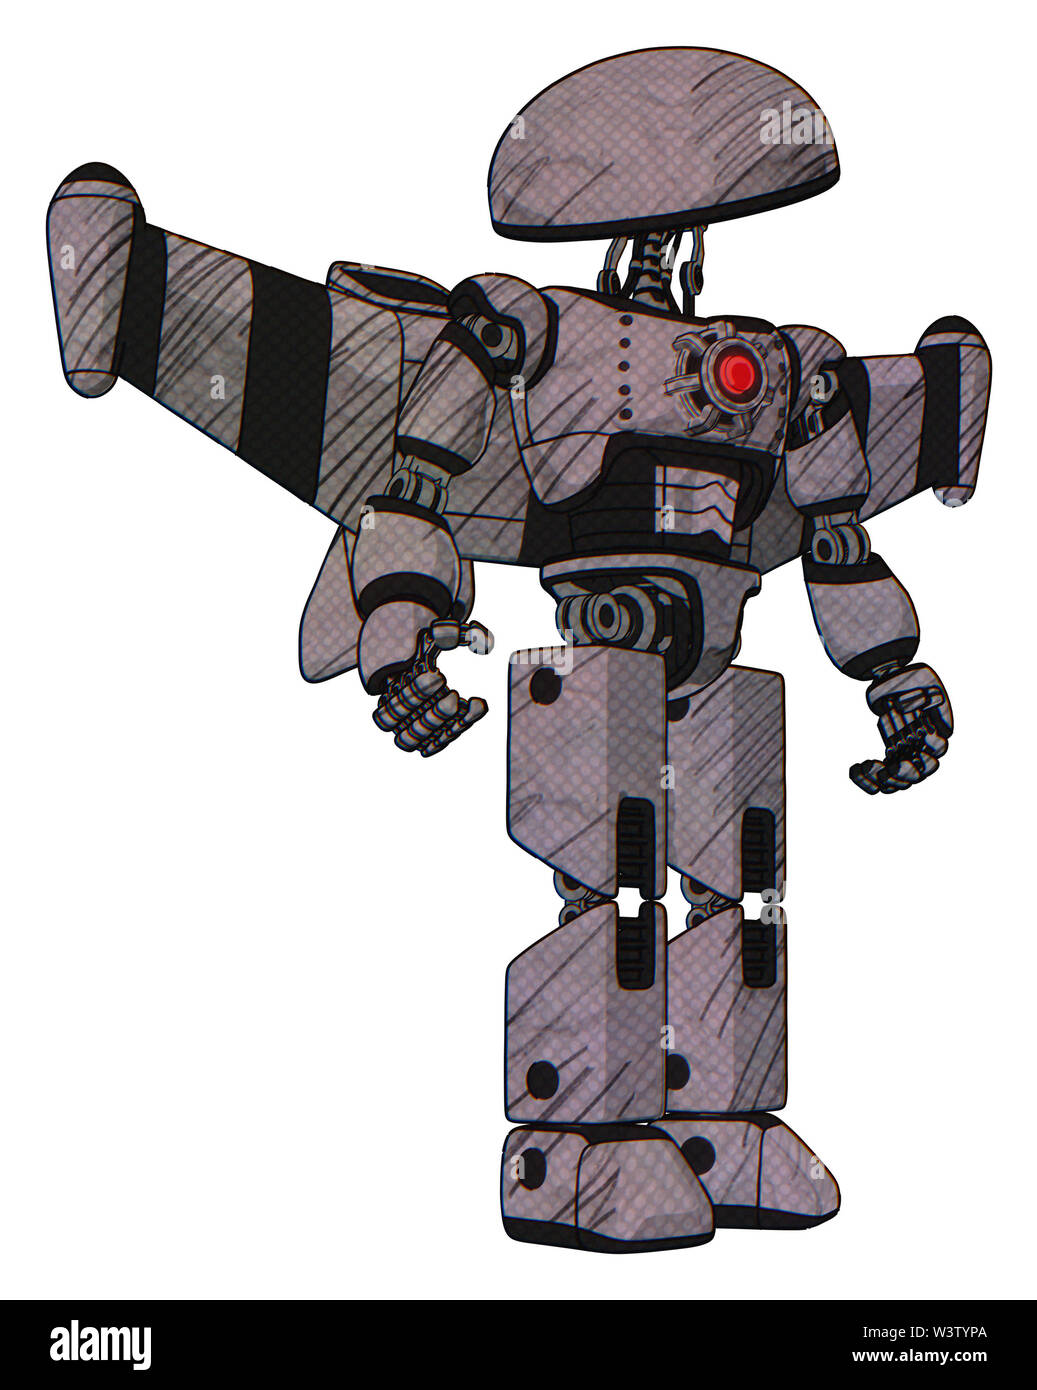 Robot containing elements: dome head, light chest exoshielding, red energy core, stellar jet wing rocket pack, prototype exoplate legs. Material: Dark - Stock Image